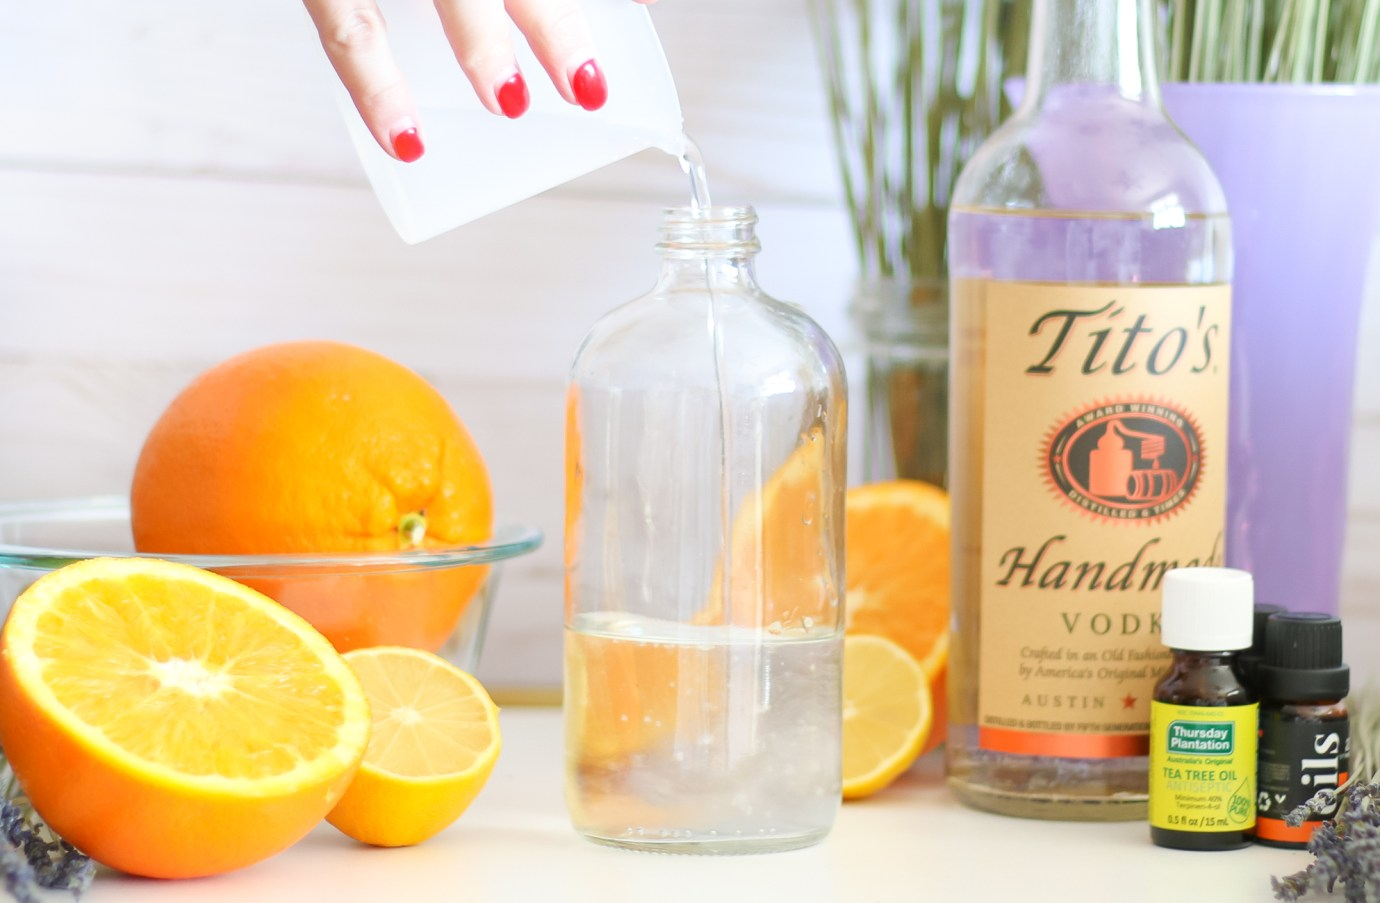 DIY essential oil linen spray by southern fashion blogger Stephanie Ziajka from Diary of a Debutante, DIY laundry spray with lavender, sweet orange, and tea tree oil from Thursday Plantation